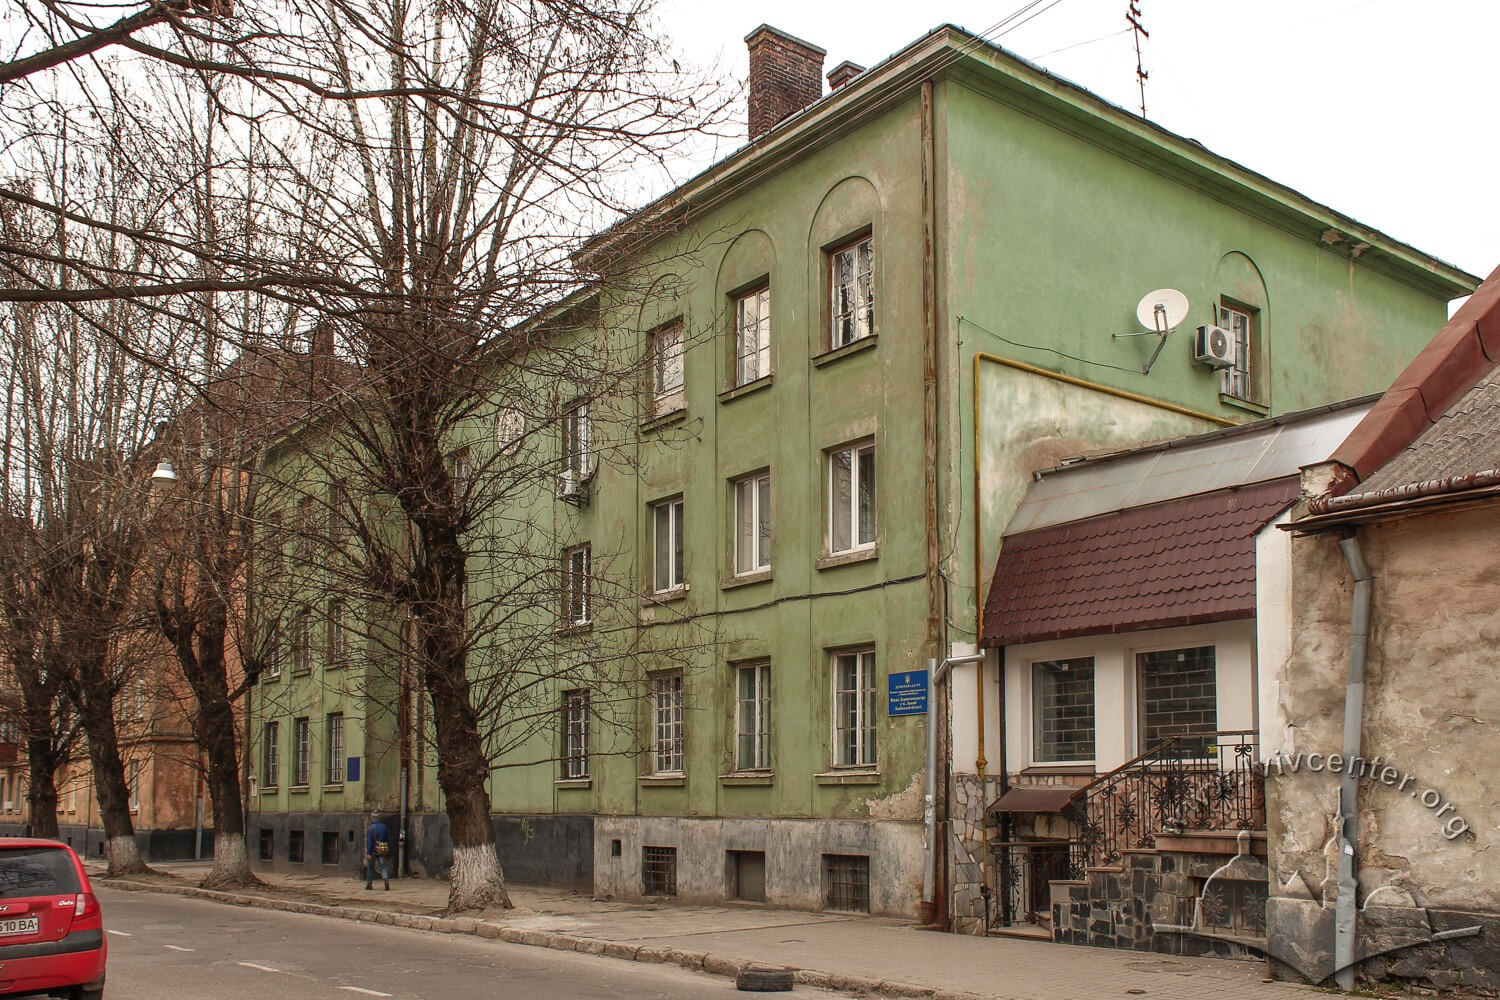 Vul. Donetska, 3. Former City cleaning plant's apartment house, constructed in the 1920s. A view from the south/Photo courtesy of Olha Zarechnyuk, 2016